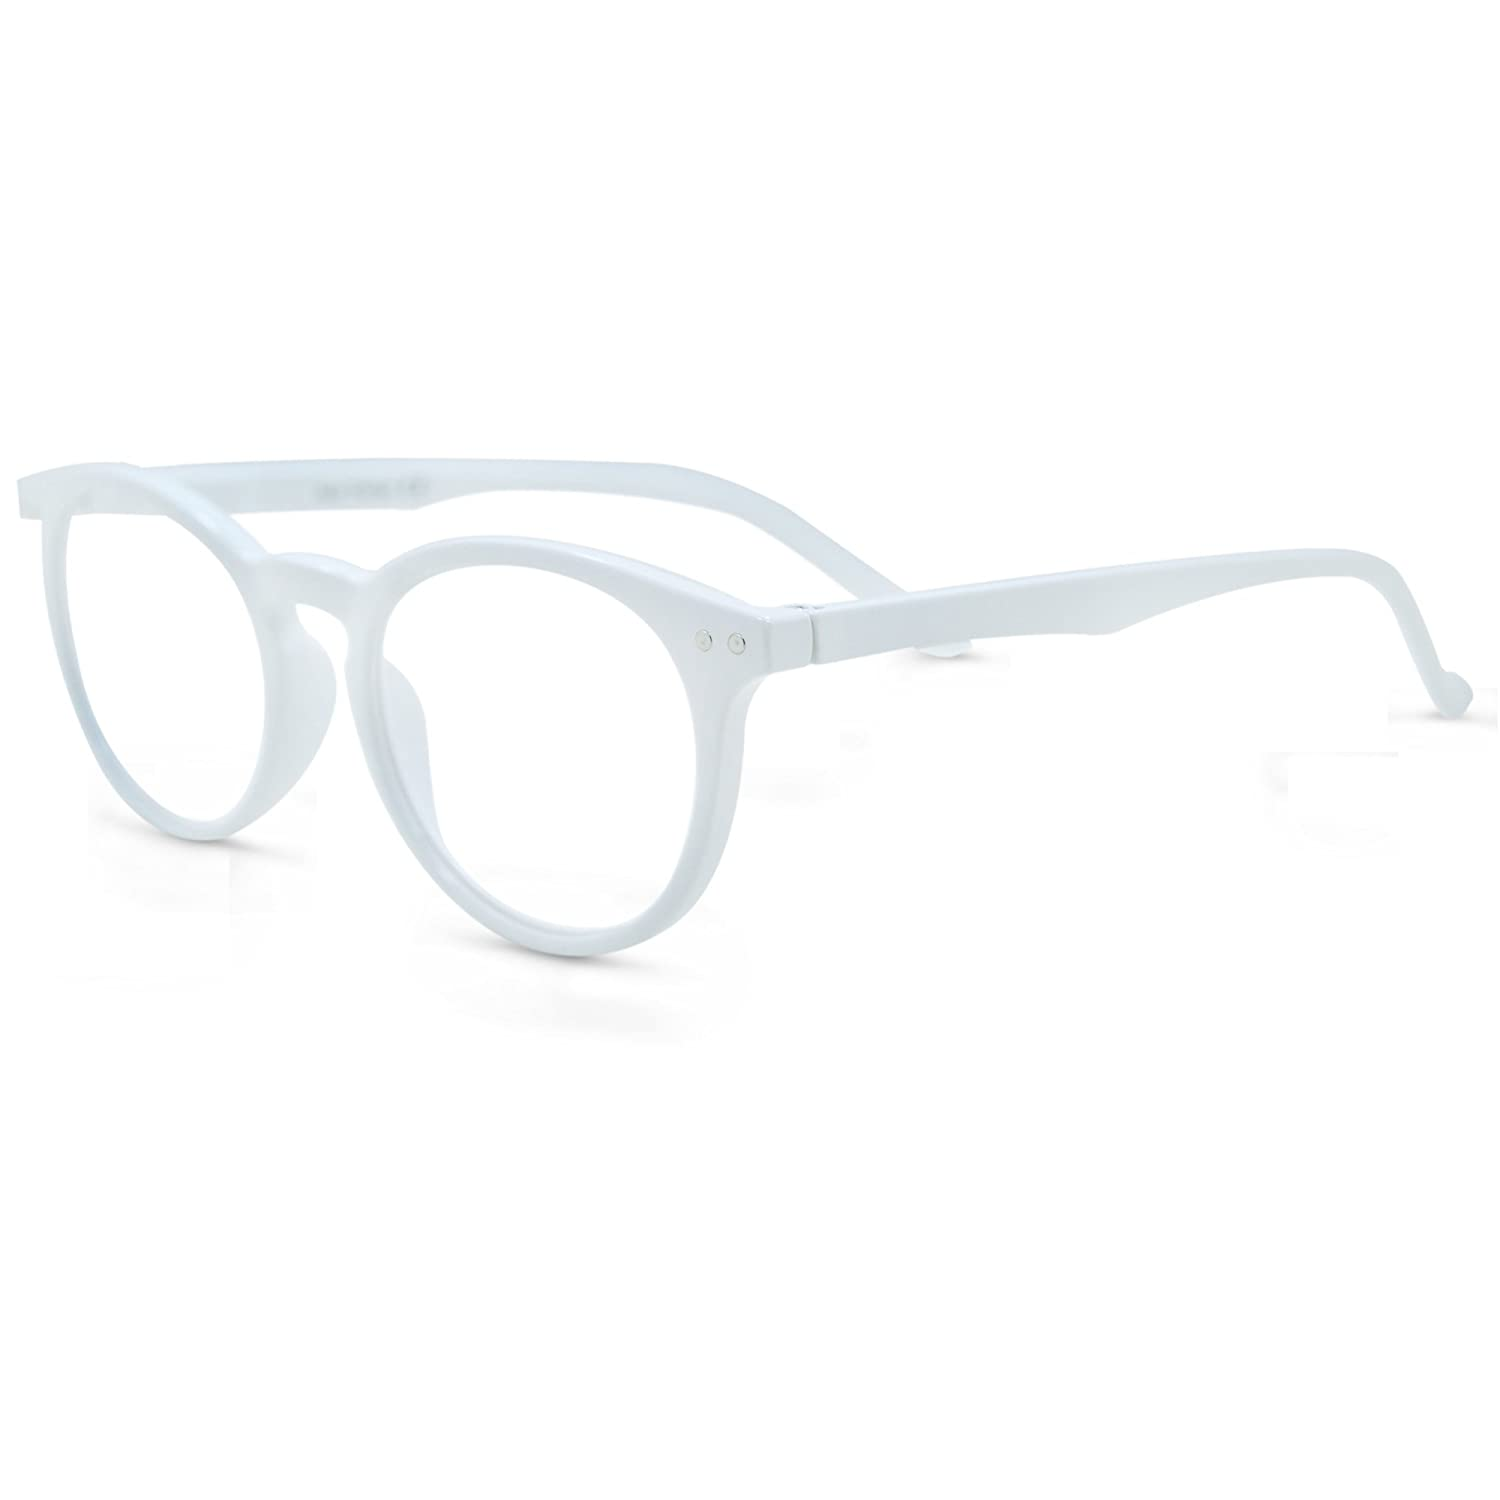 In Style Eyes Flexible Readers, Super Comfortable Lightweight Reading Glasses